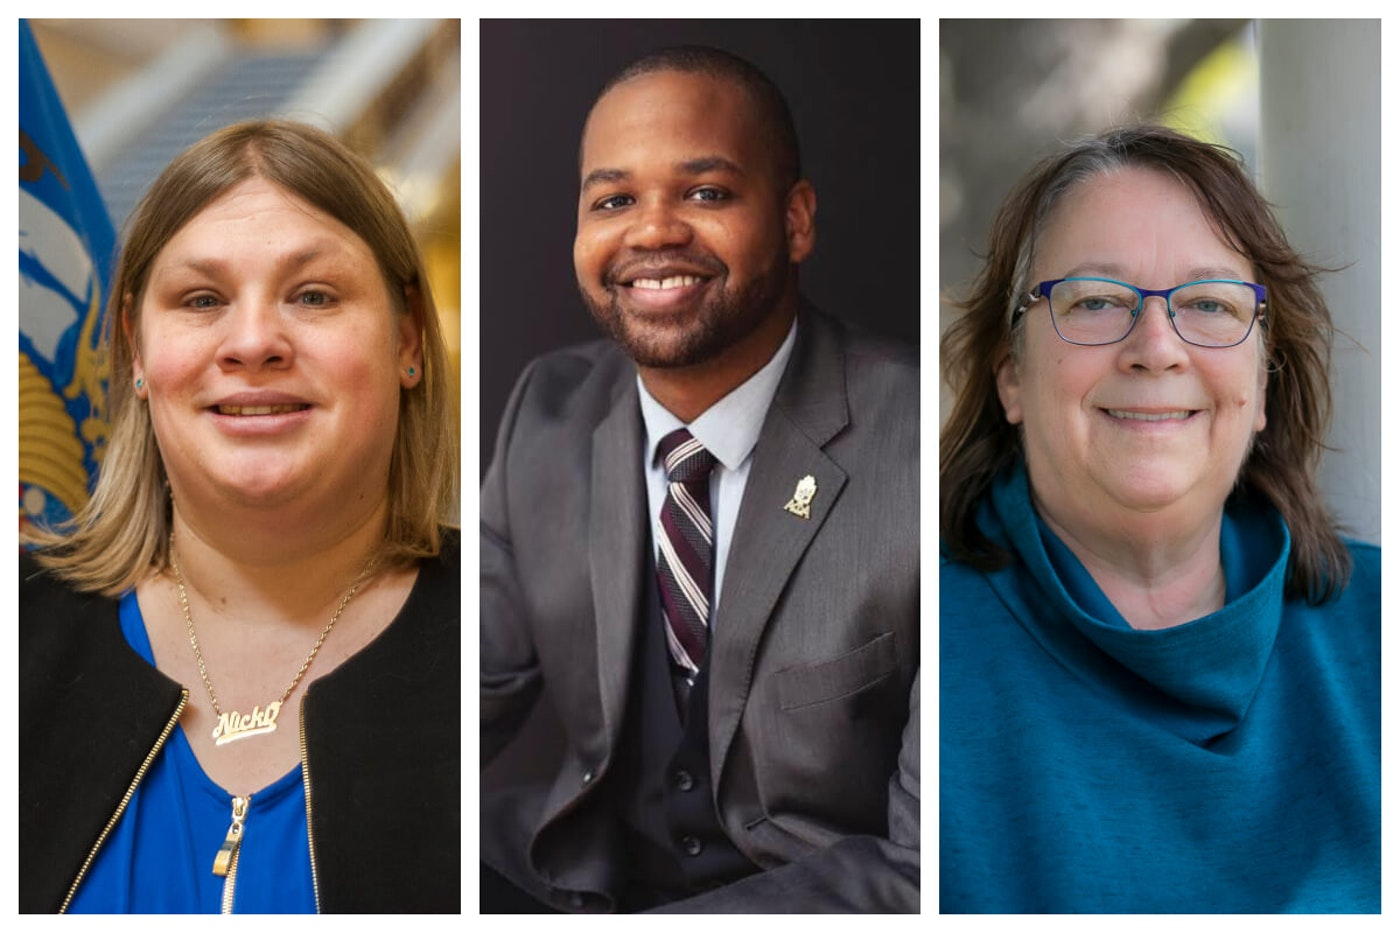 Nicki Vander Meulen, Tyrone Cratic Williams, and Marsha Rummel are three of the seven Democratic candidates running in the Aug. 11 primary to replace Rep. Chris Taylor, D-Madison, who will not be running for reelection.